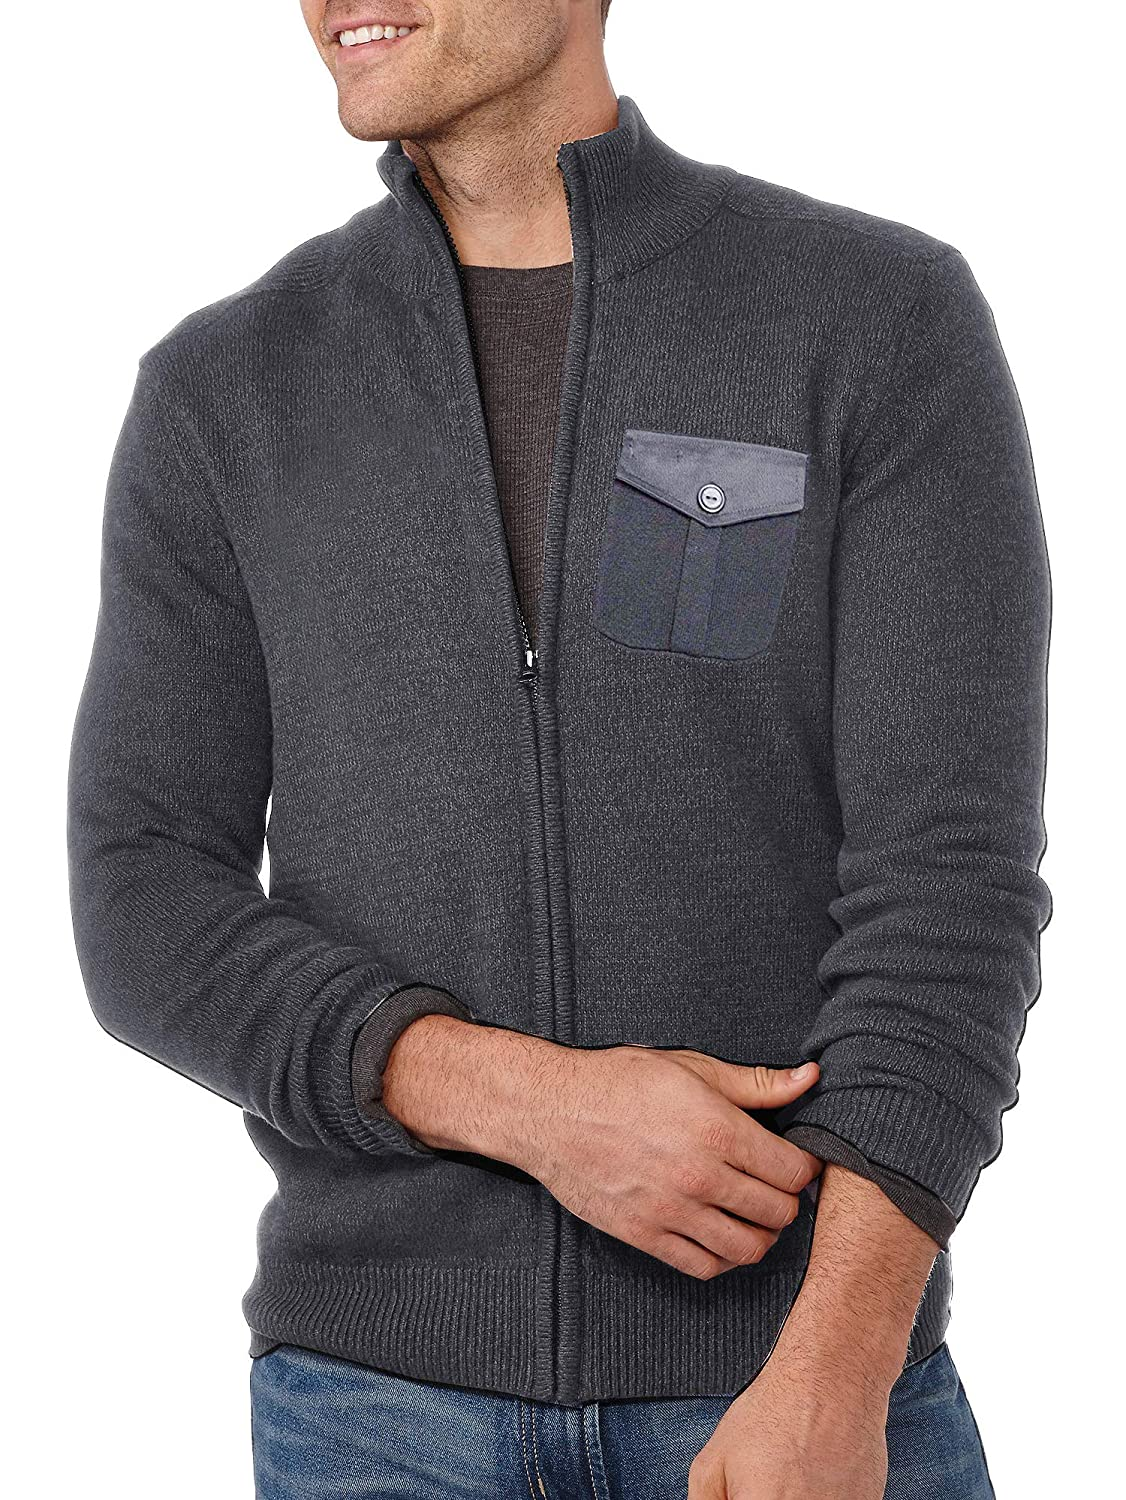 COOFANDY Men's Zip up Sweater Slim Fit Casual Lightweight Knitted Cotton Cardigan 10030007